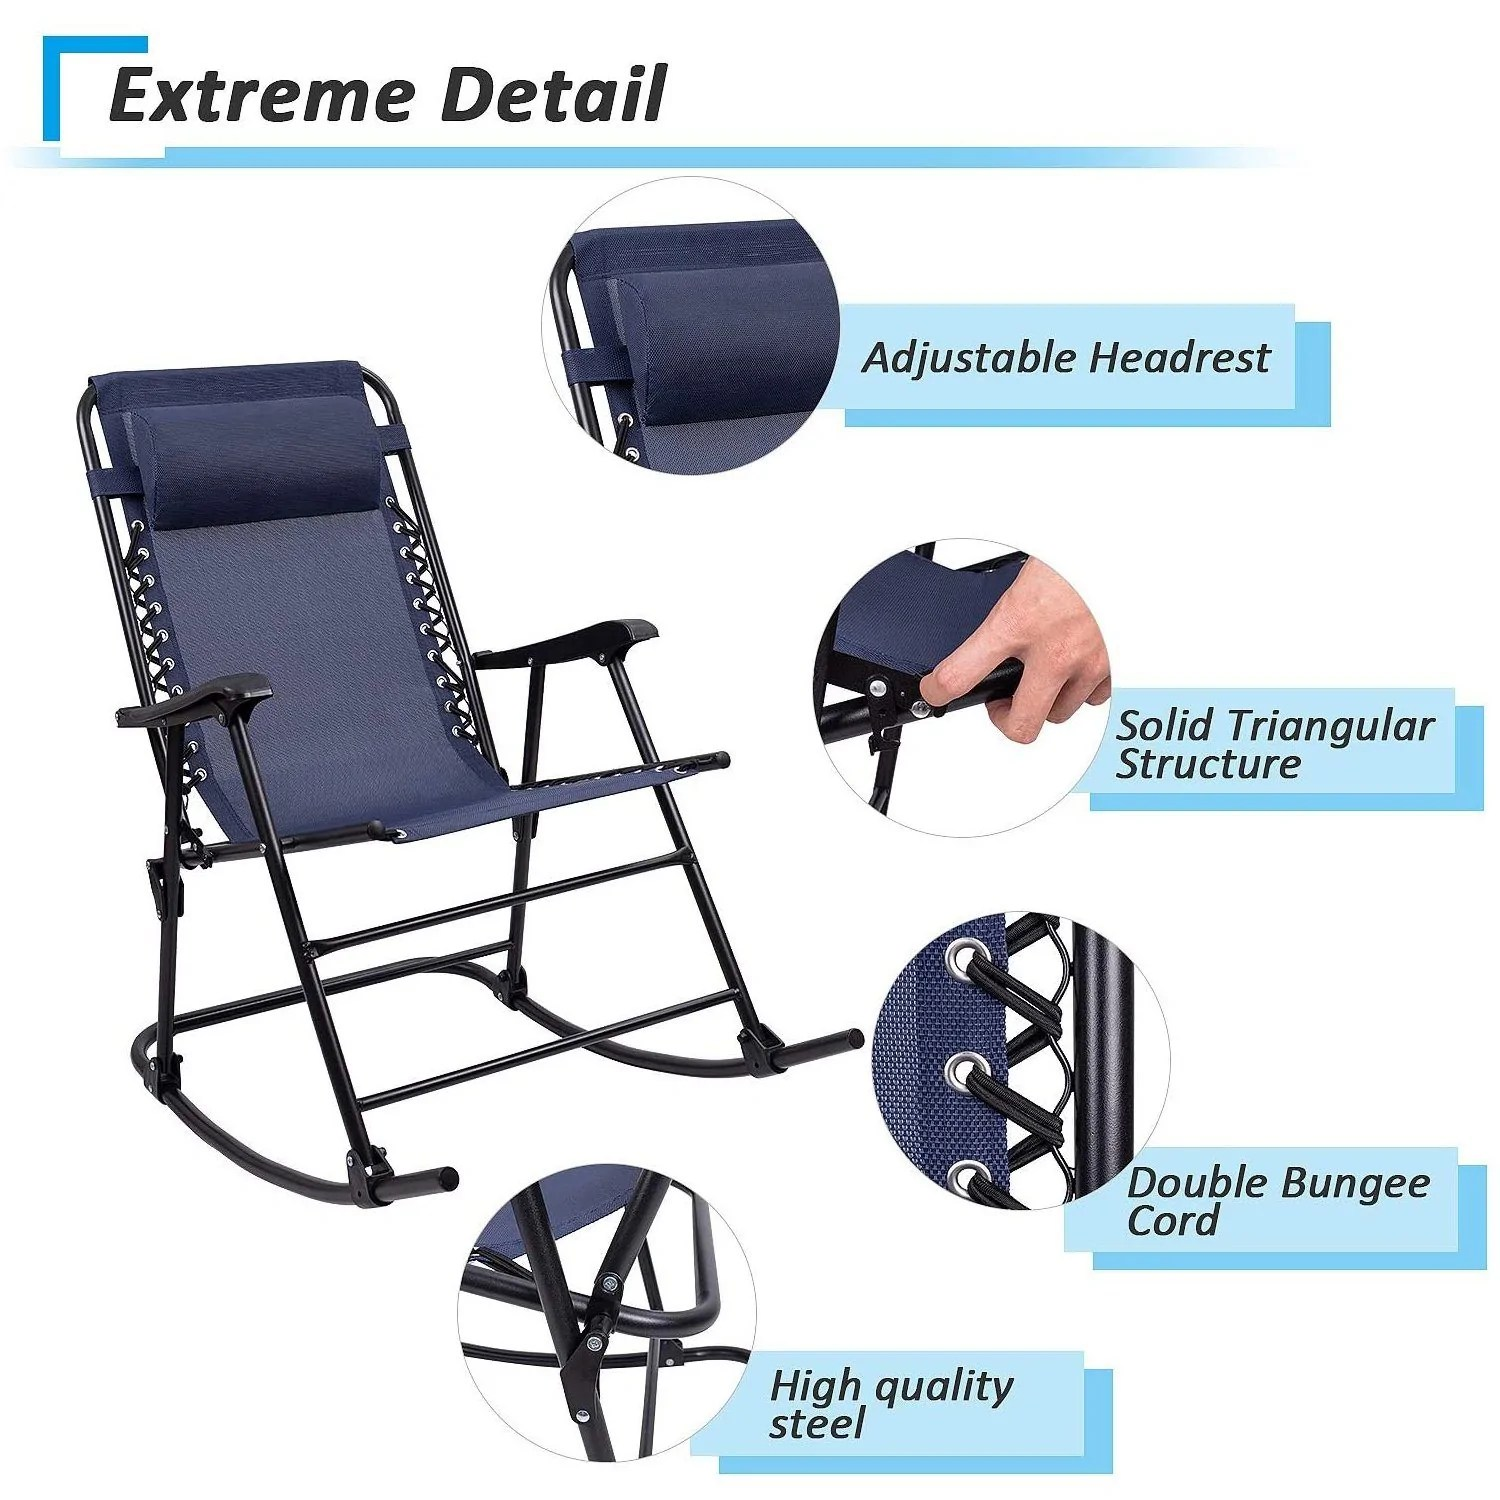 Furniwell Patio Rocking Chair Zero Gravity Chair Outdoor Folding Recliner Foldable Lounge Chair Outdoor Pool Chair For Poolside And Camping Furniwell